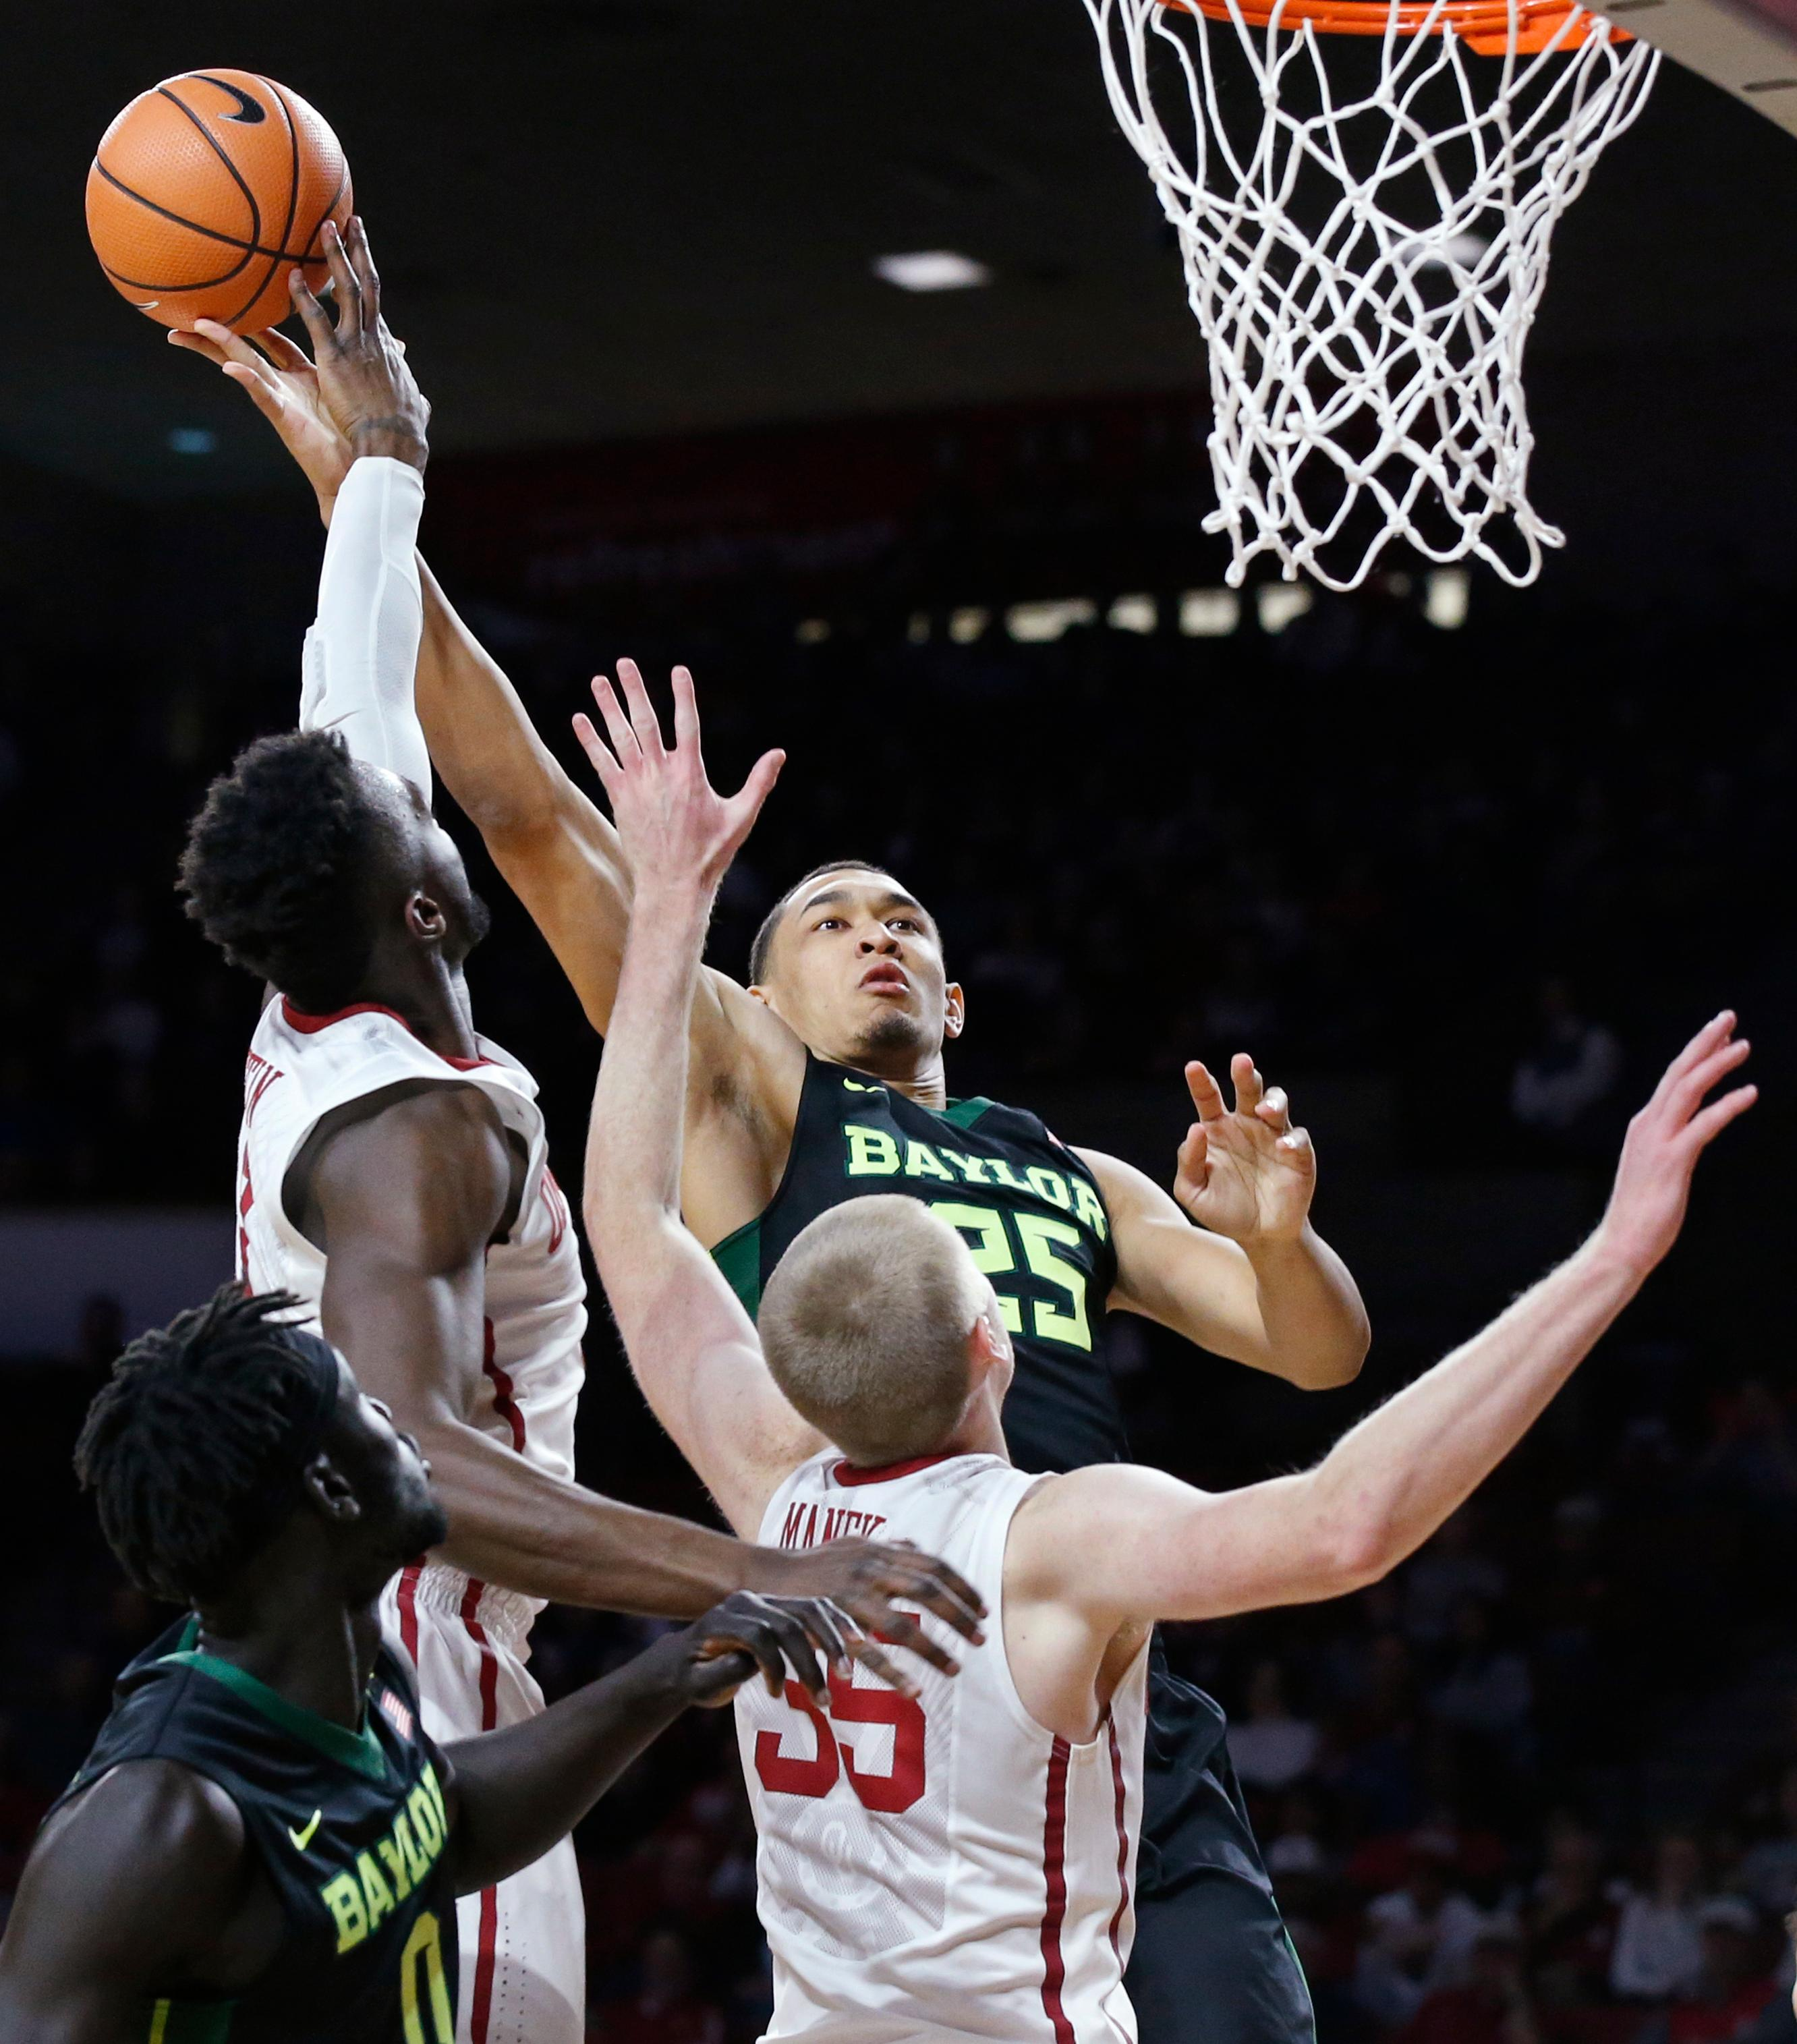 Baylor forward Tristan Clark (25) shoots as Oklahoma forward Khadeem Lattin, left, and forward Brady Manek (35) defend during the first half of an NCAA college basketball game in Norman, Okla., Tuesday, Jan. 30, 2018. (AP Photo/Sue Ogrocki)